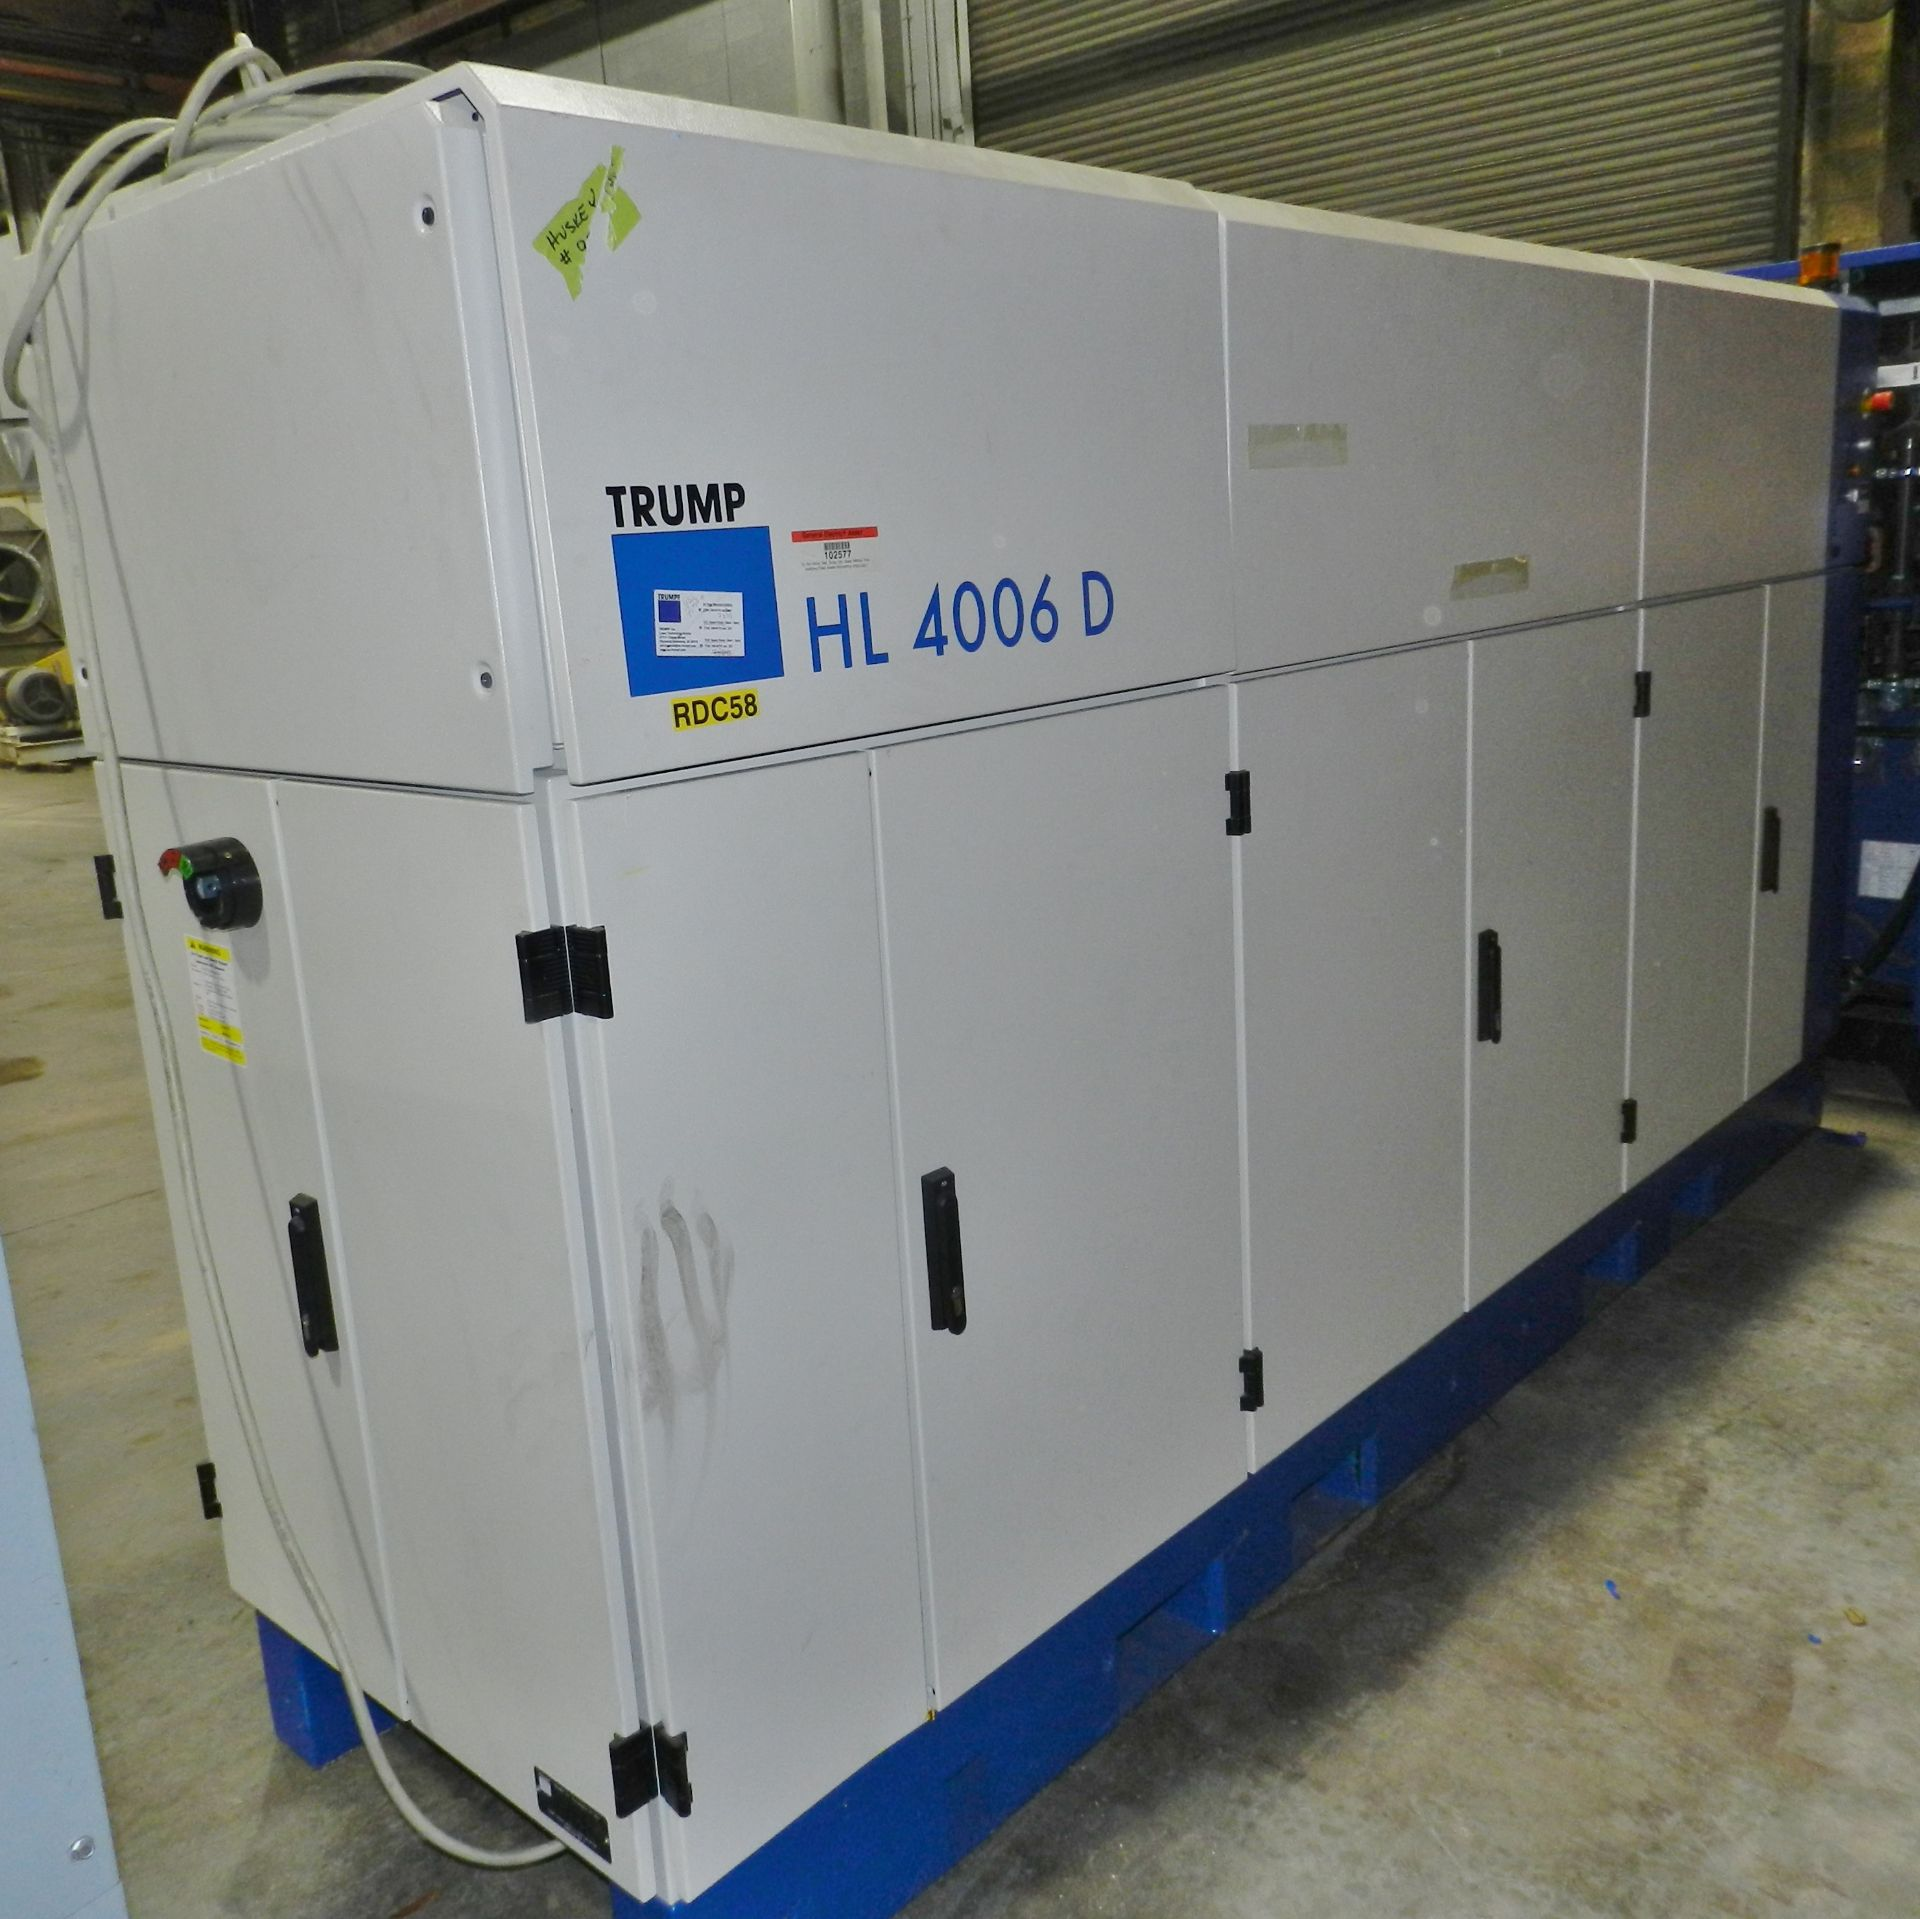 Lot 37 - Trumpf YAG HL4006D Laser Welding CW Solid State 4000W W/ Chiller